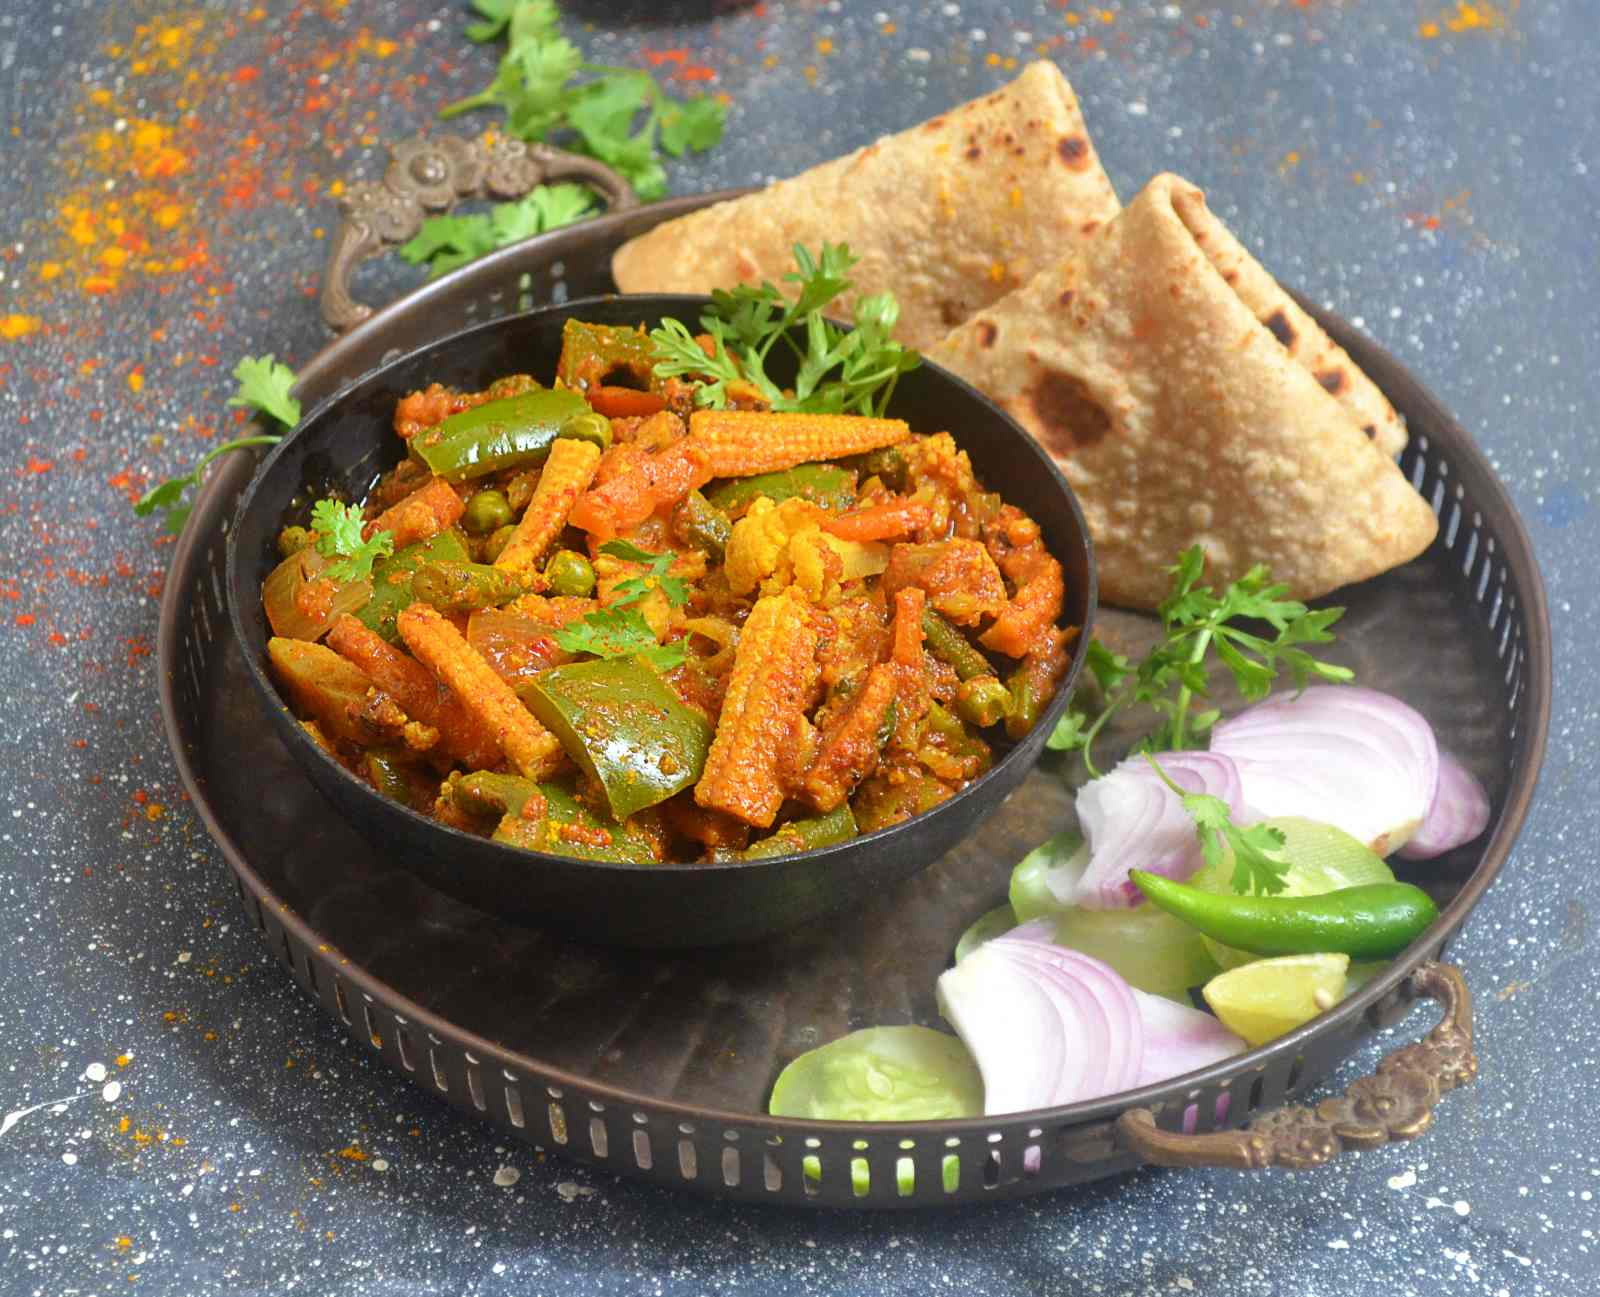 Punjabi mixed vegetable kadai recipe by archanas kitchen punjabi mixed vegetable kadai is a popular restaurant style side dish that goes well with phulka paratha naan or any indian bread forumfinder Images